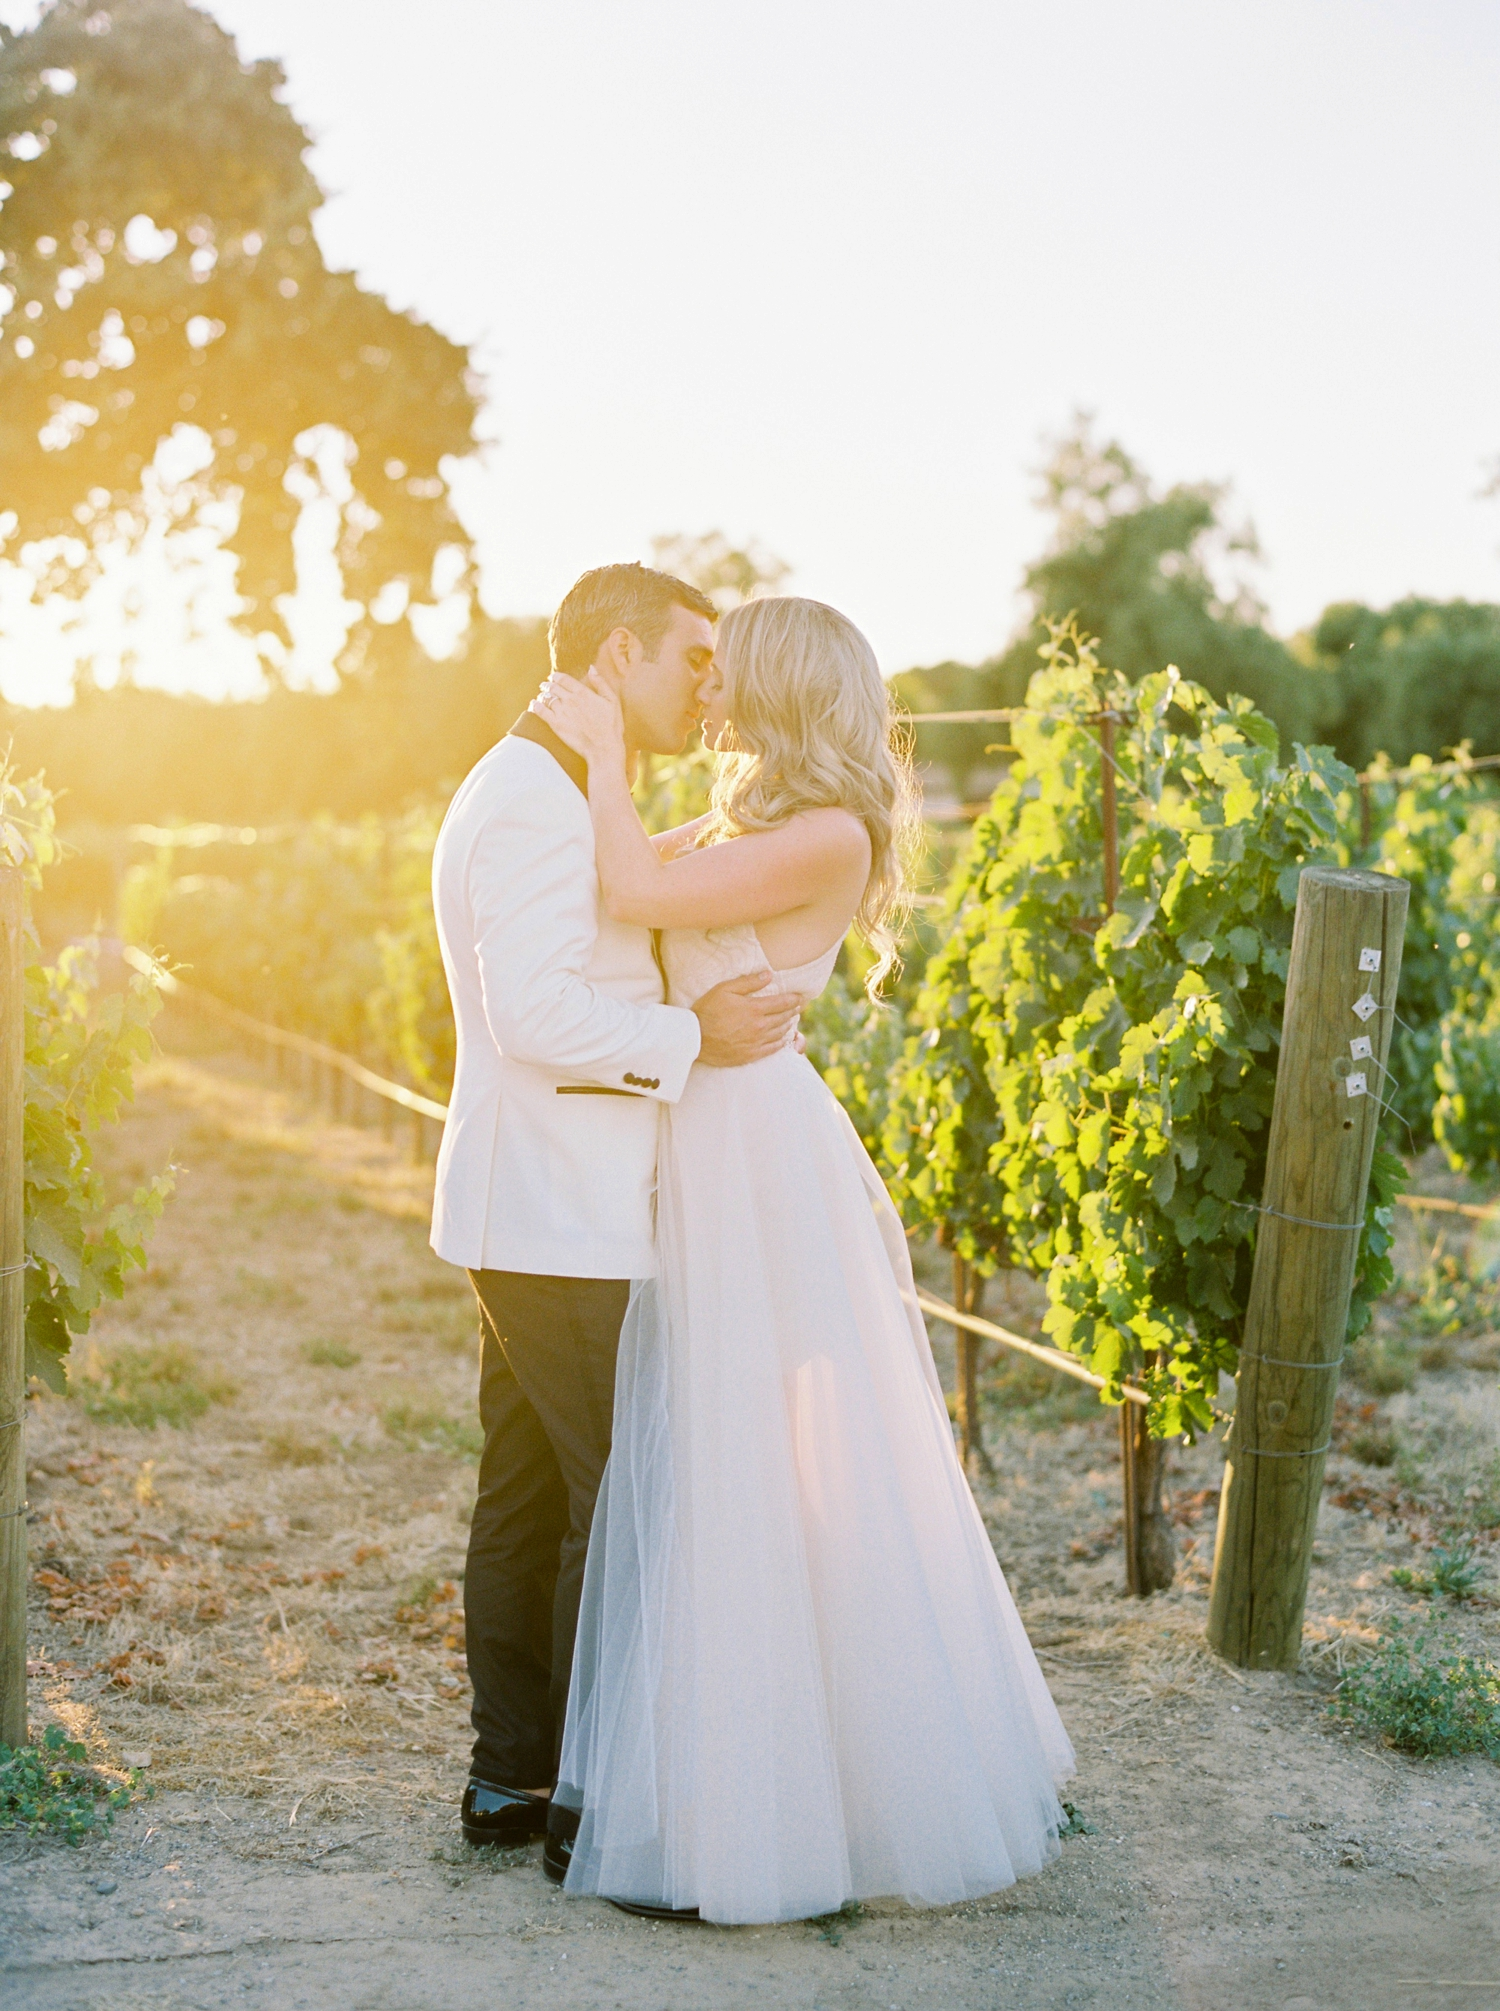 Sunstone Winery and Villa | California Wedding Photographers | Santa Barbara Wedding Photography | Santa Ynez Wedding | Justine Milton Photographer | Fine Art Film | Sunset Portraits